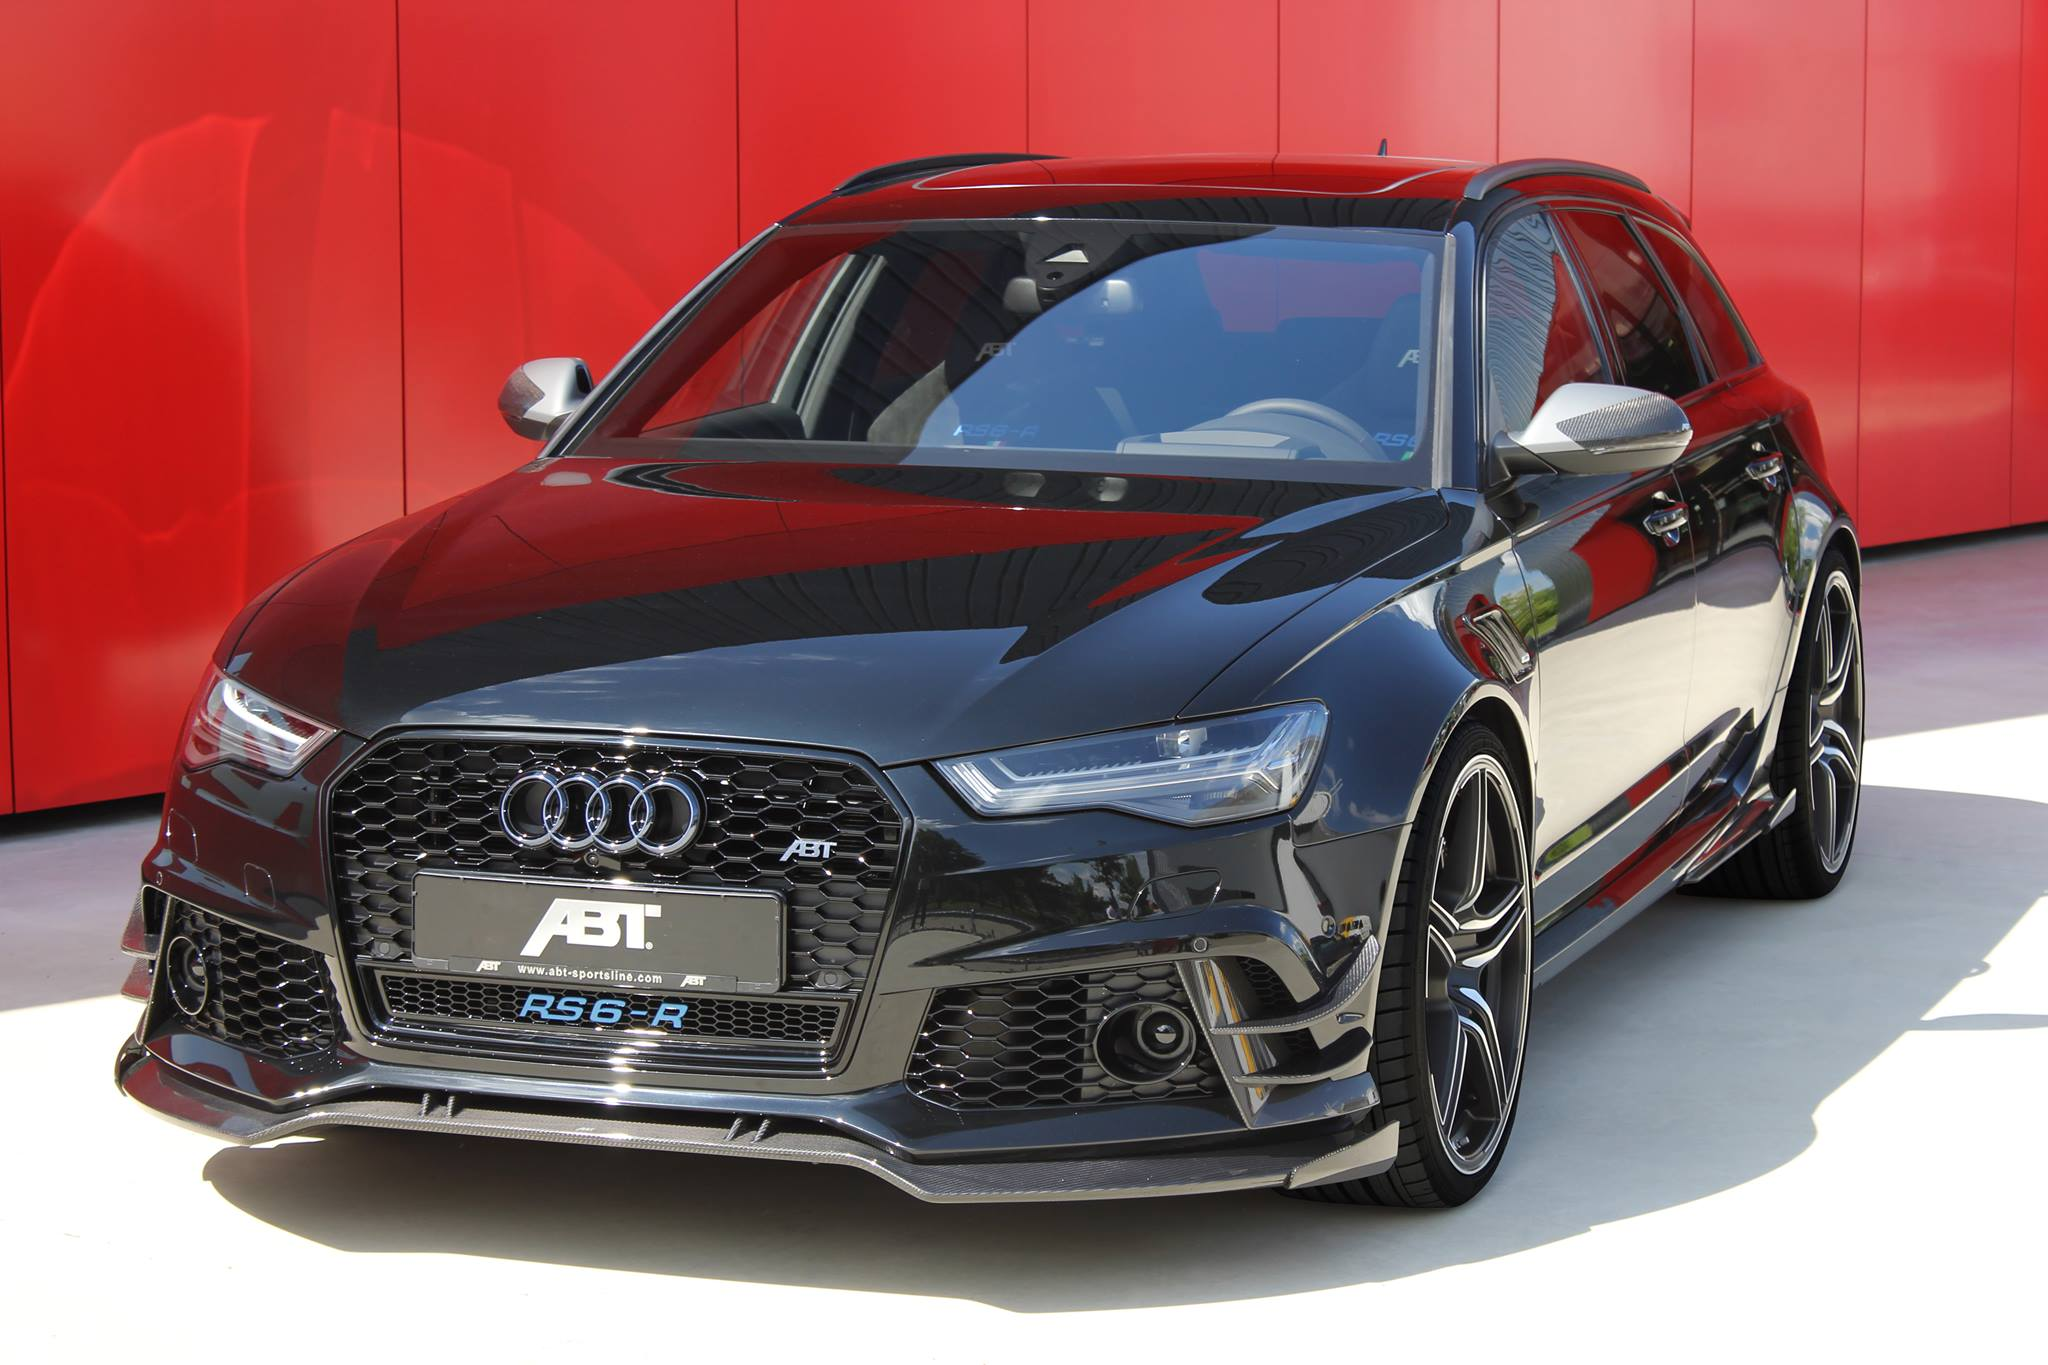 Audi A6 Wallpaper Hd Abt Rs6 R Edizione Italiana Is Another 730 Hp Audi